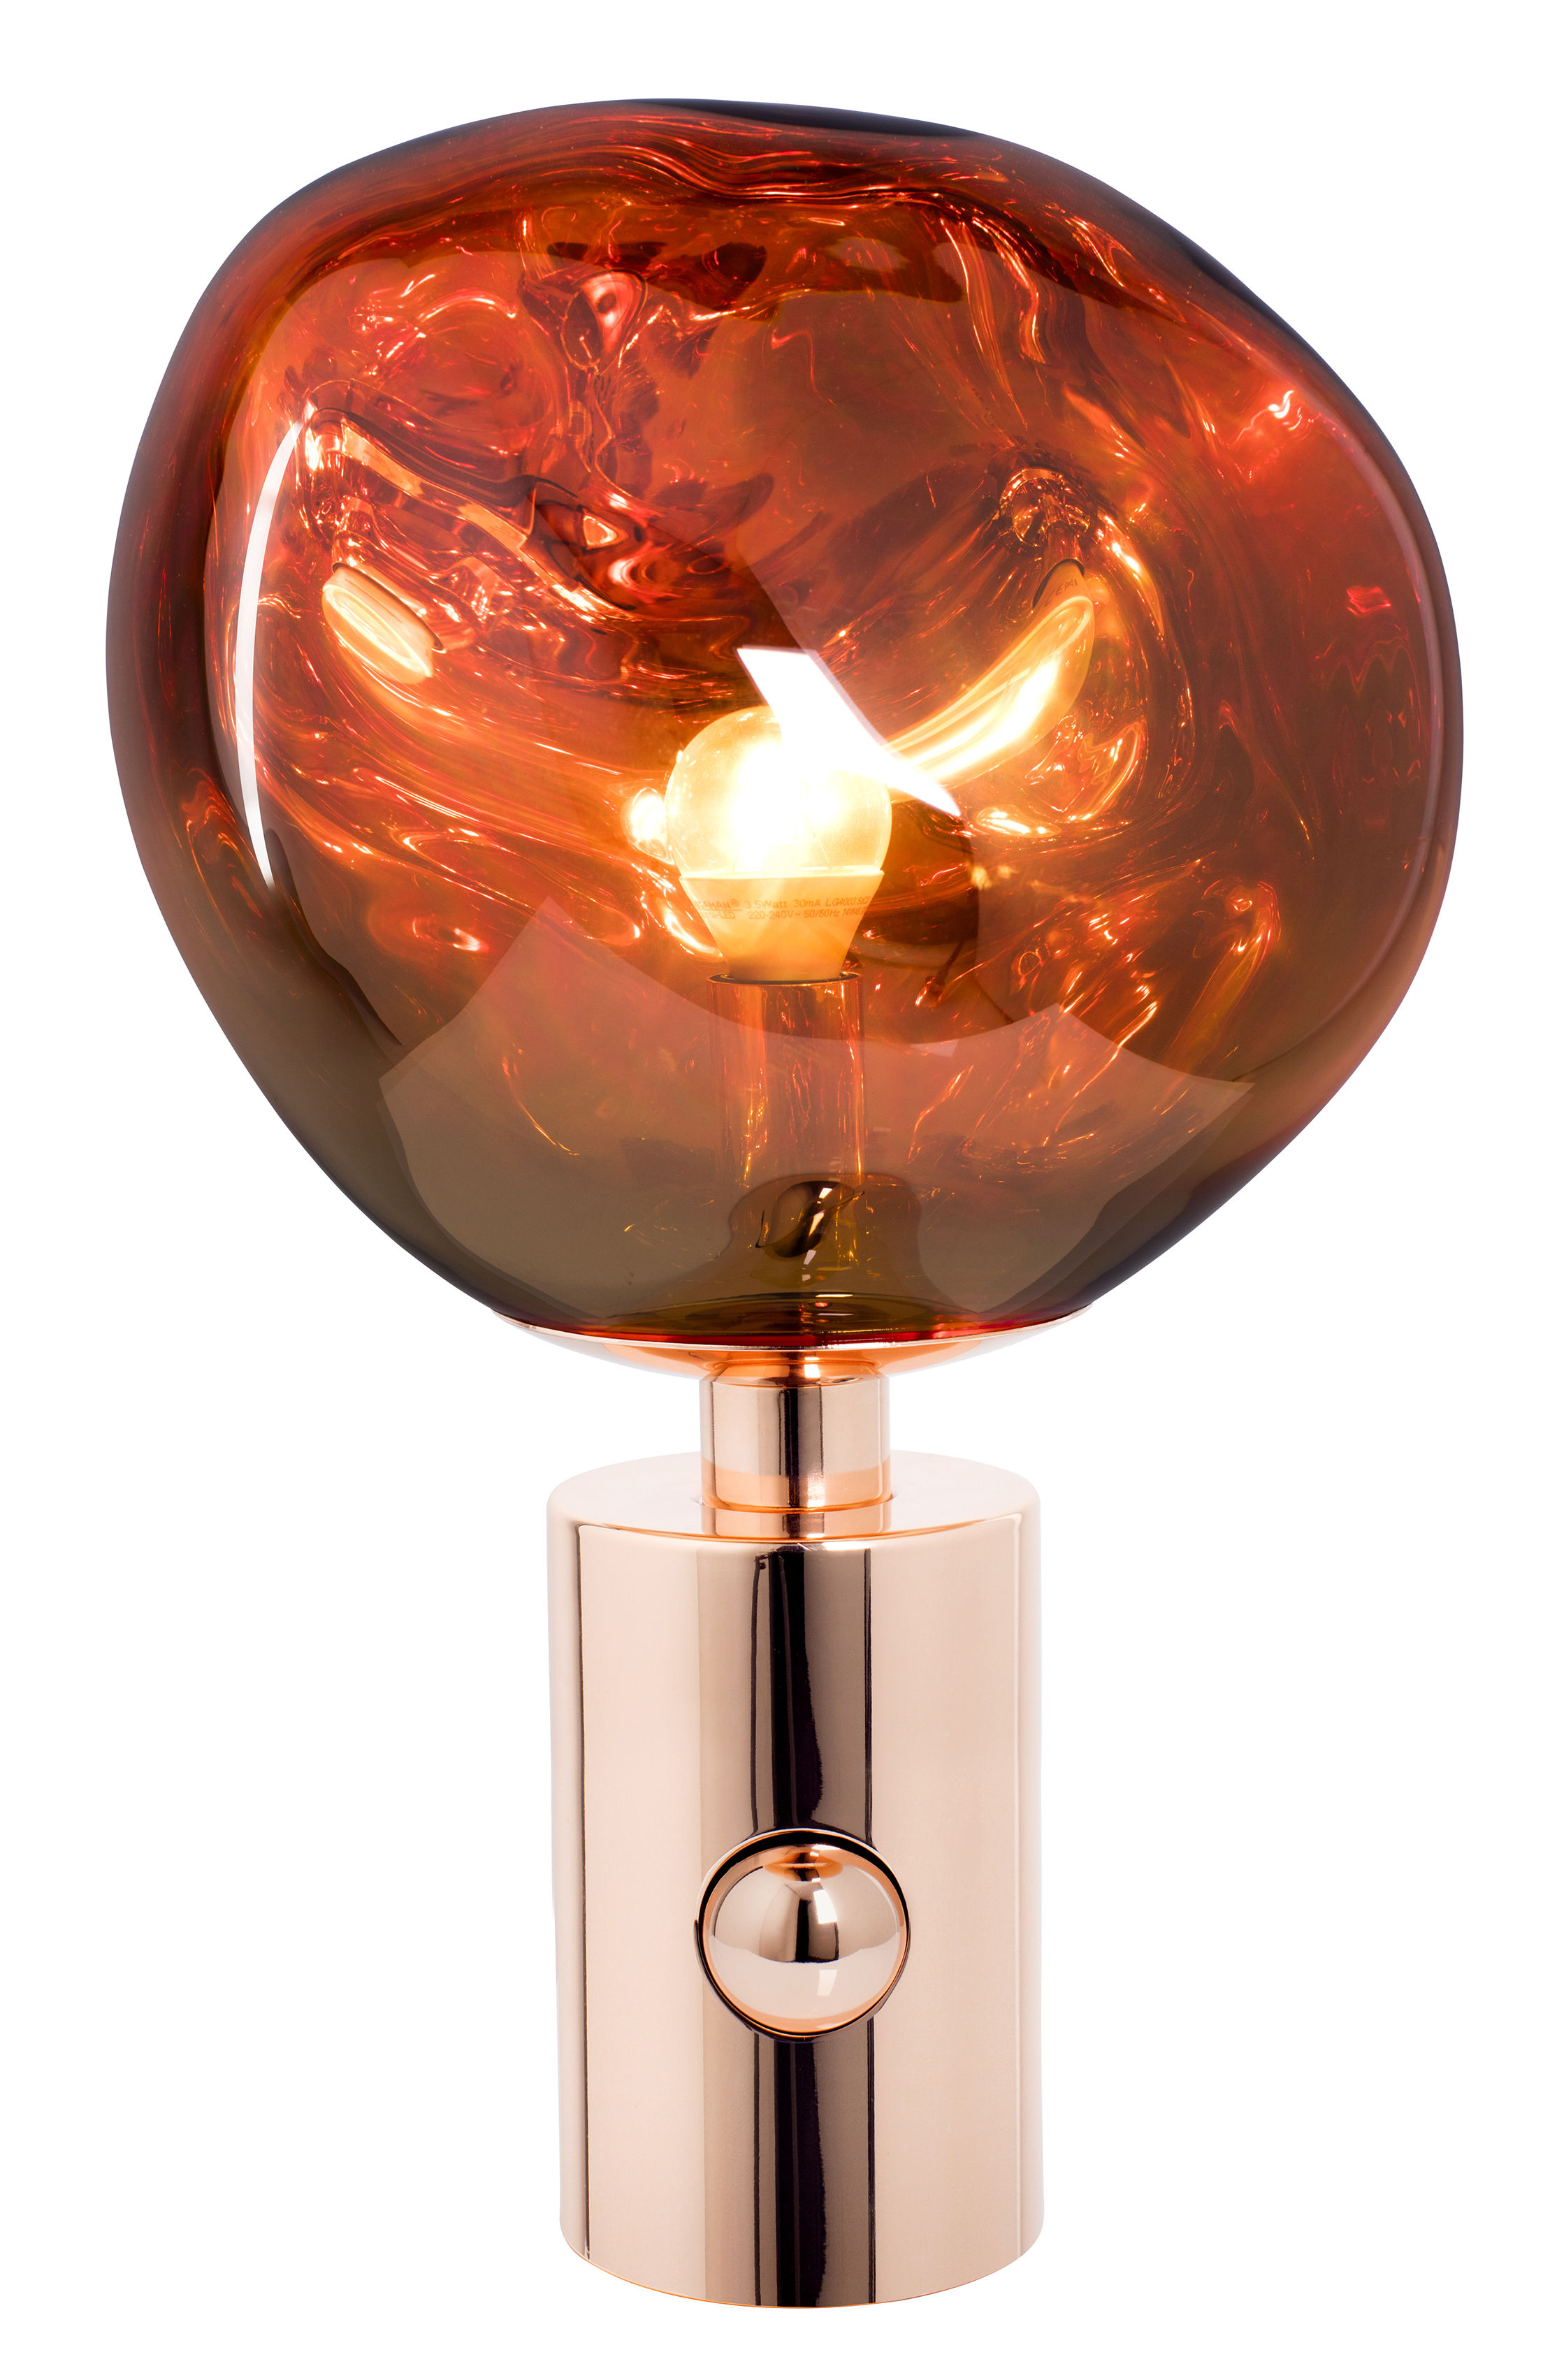 Lighting - Table Lamps - Melt Table lamp - H 43 cm by Tom Dixon - Copper - Polycarbonate, Steel